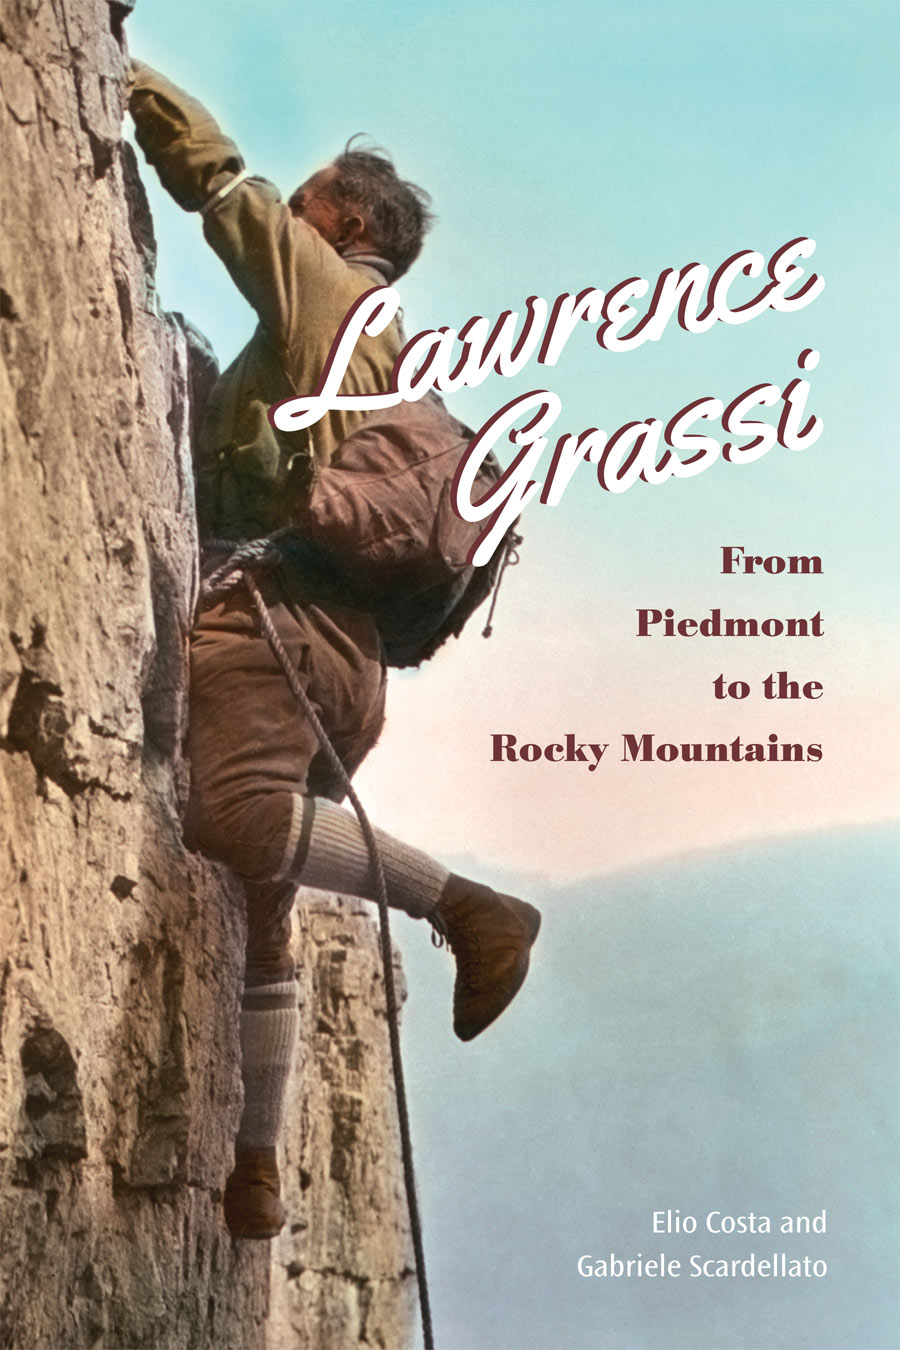 Lawrence Grassi book launch